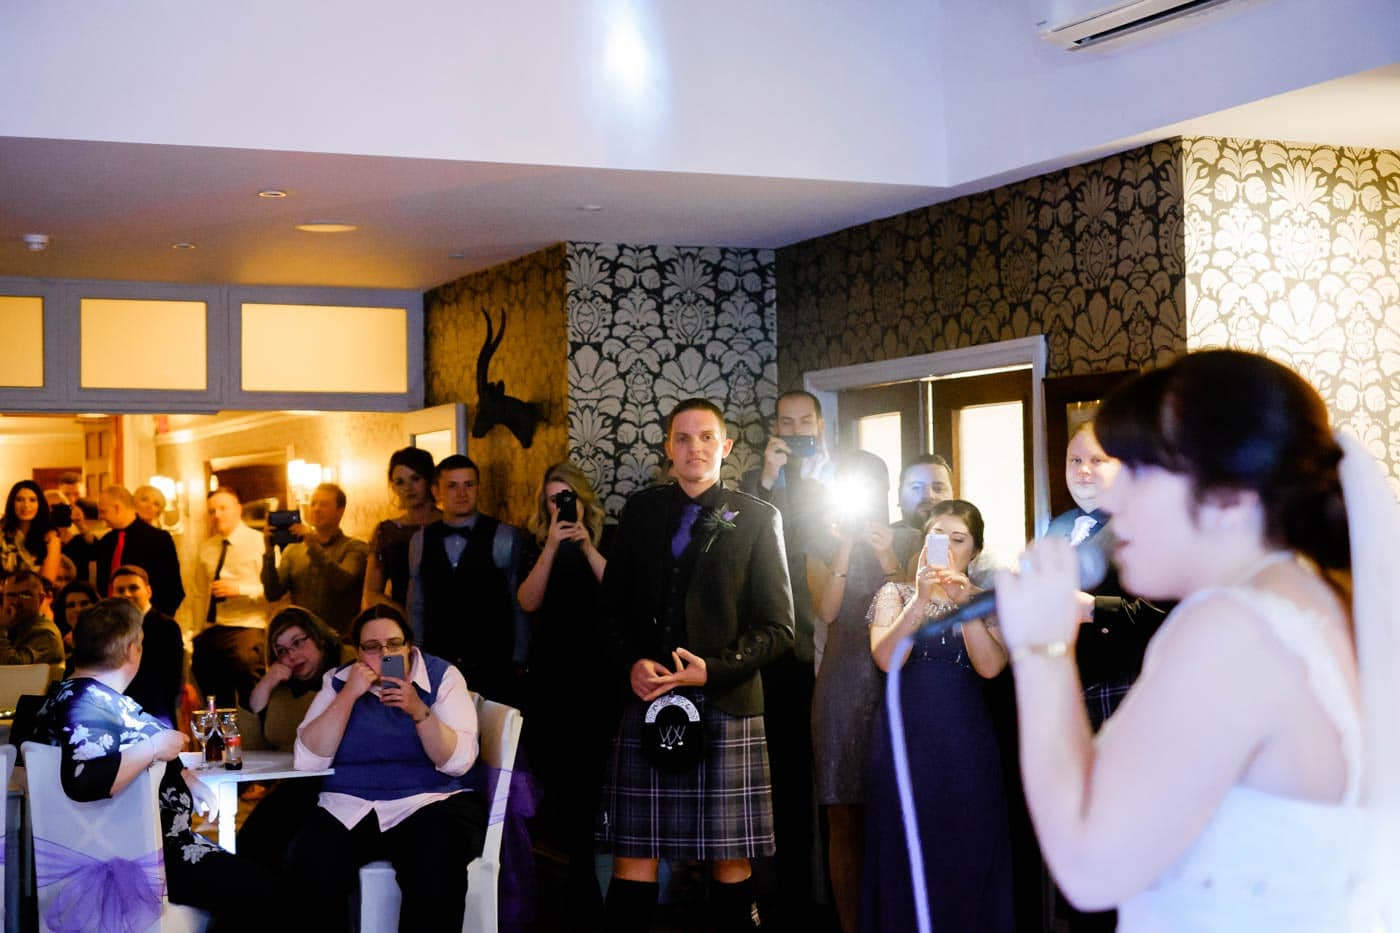 Scottish groom watching his bride sing a surprise song for him during the evening wedding reception